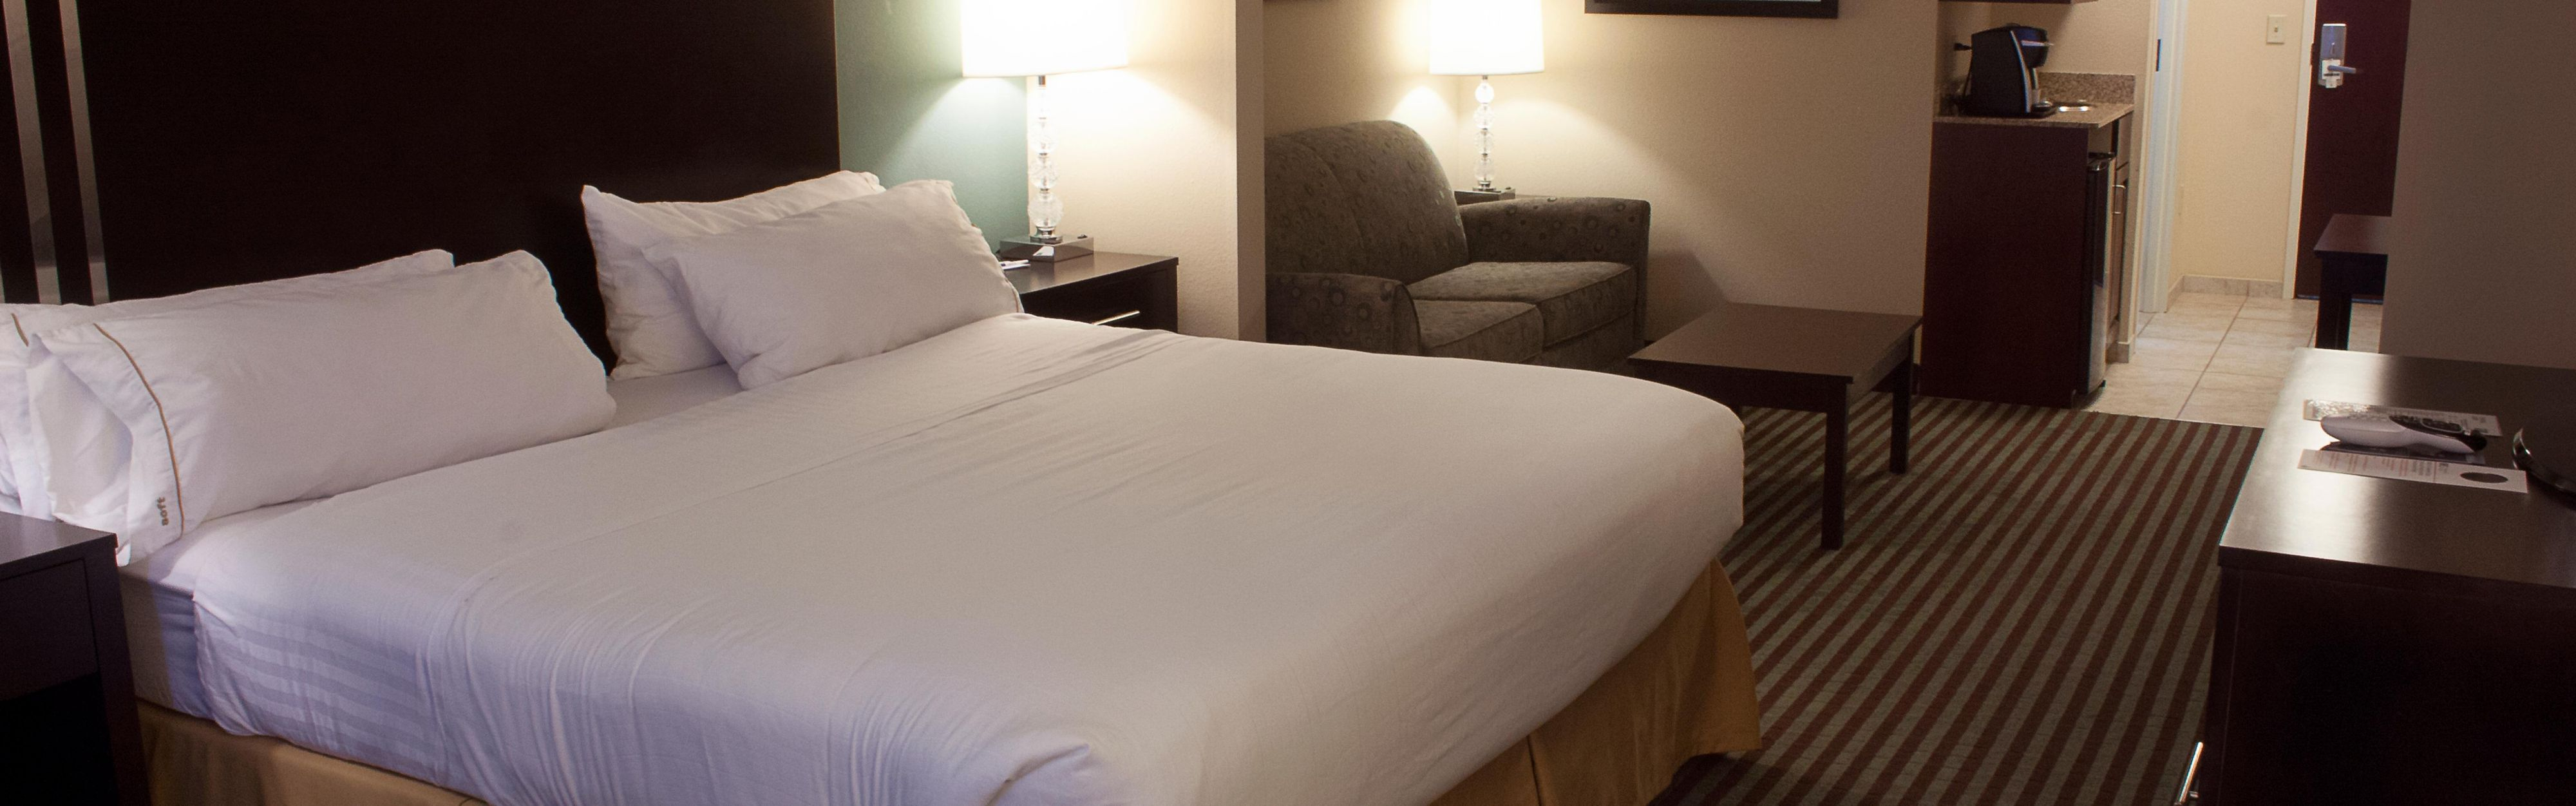 Holiday Inn Express & Suites Youngstown West - Austintown image 1